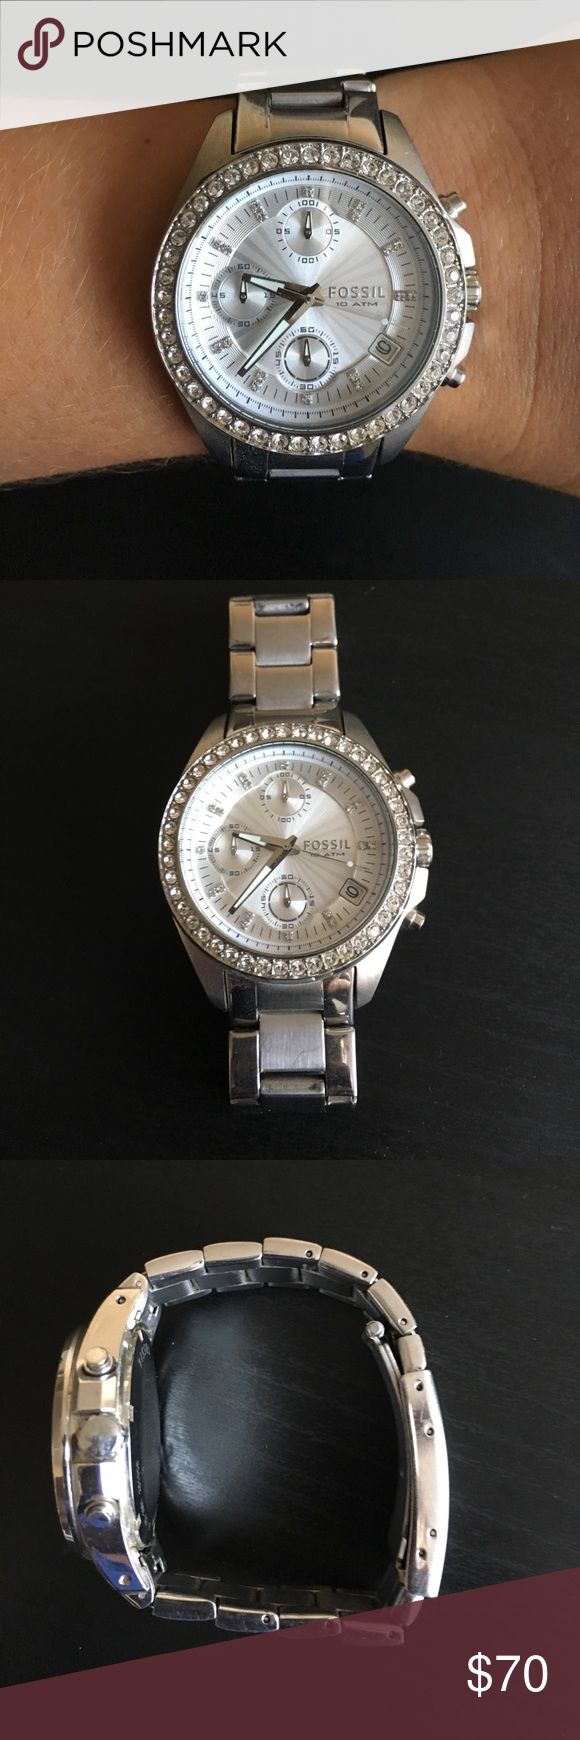 Silver Fossil Watch Silver fossil watch,  rhinestone accents and shows the date. Some scratches around the band from wear. Needs a new battery and currently fits a 6 3/4inch wrist but can be made smaller by removing links. Any watch shop can replace the battery and remove links! Fossil Accessories Watches